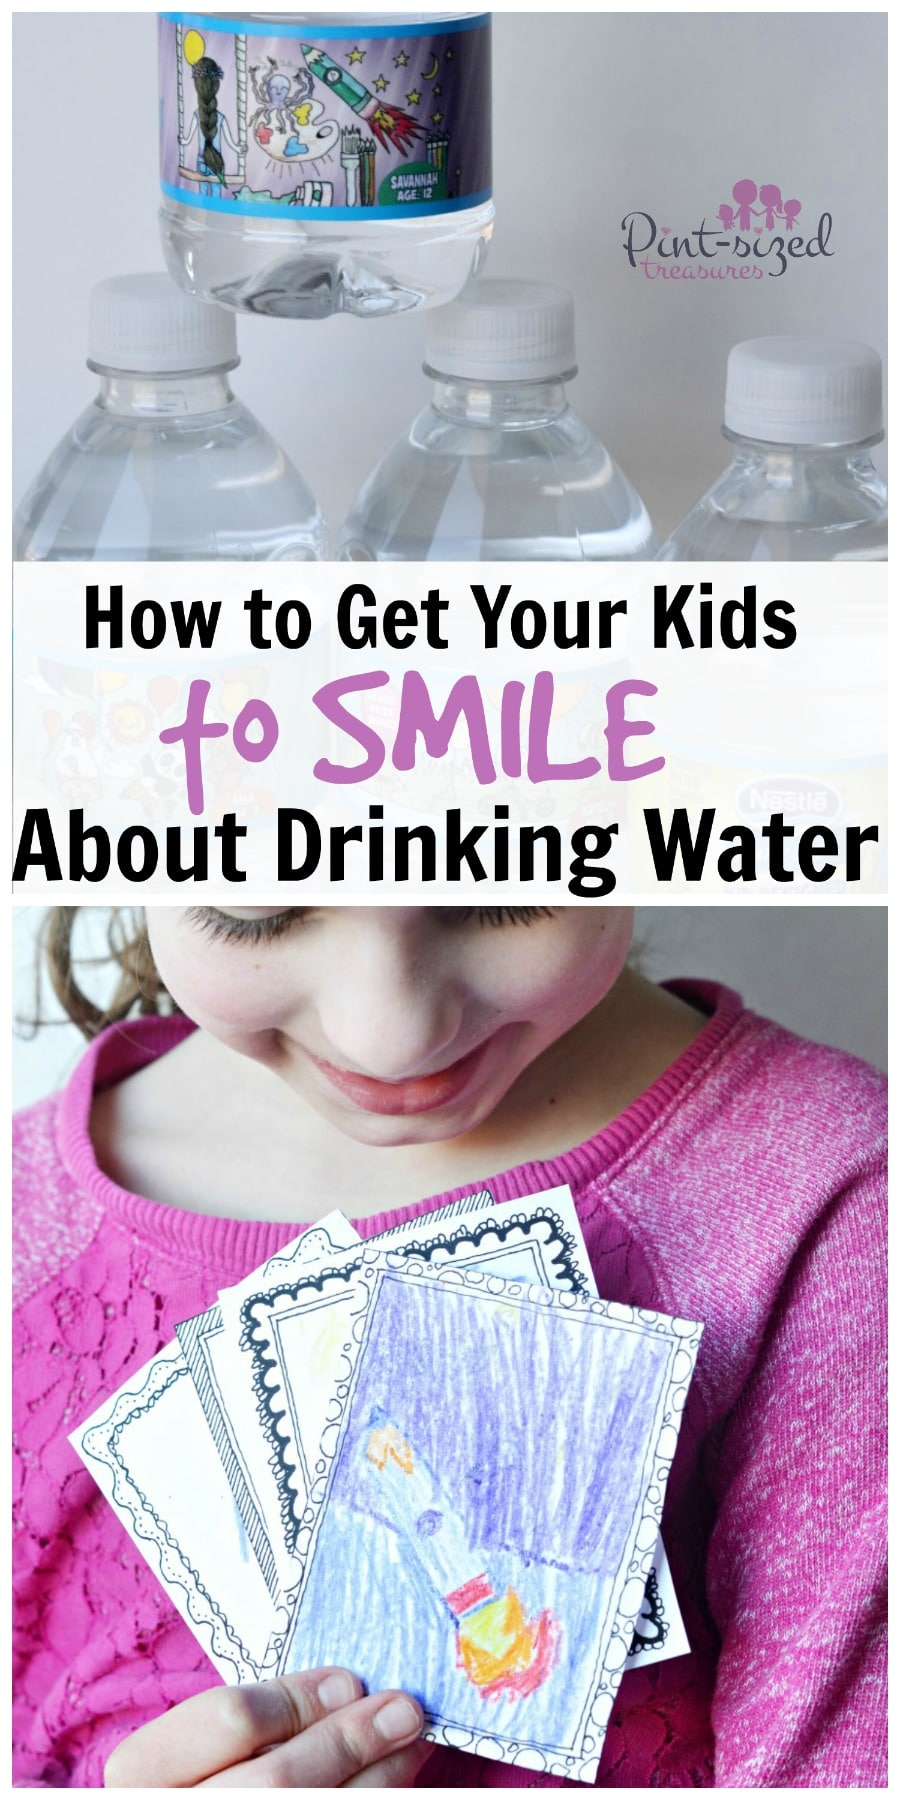 How to Get Kids to Smile About Drinking Water » Pint-sized ...